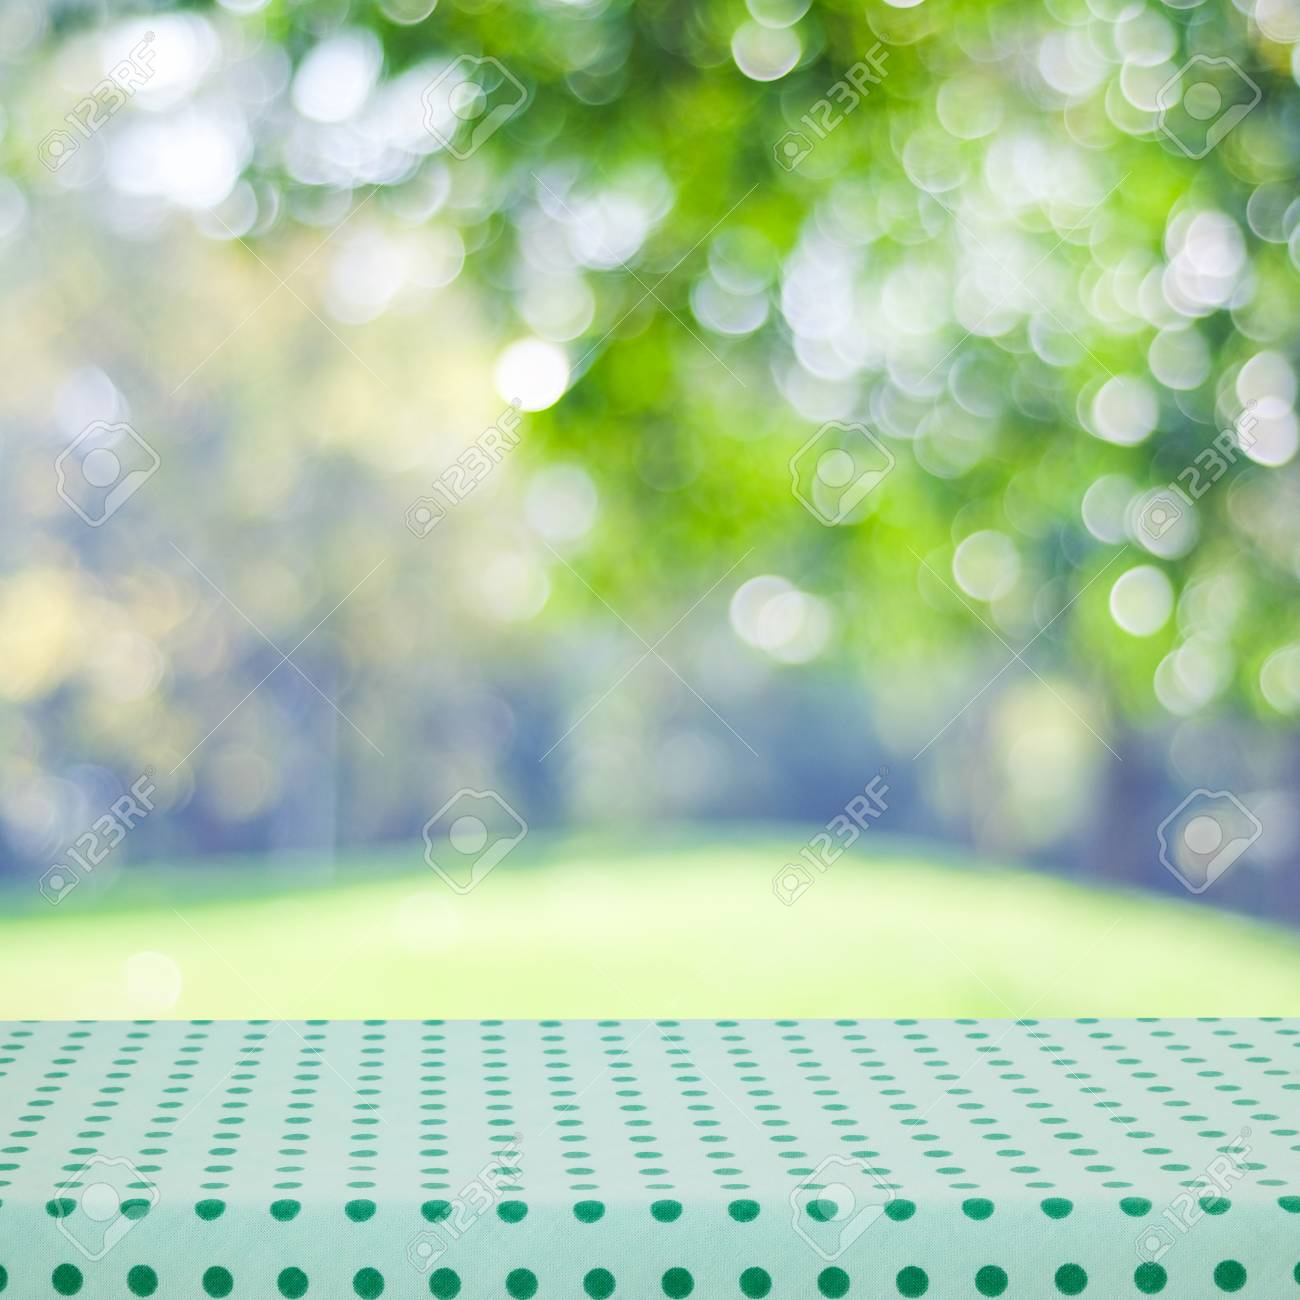 Empty Table With Green Tablecloth Over Blur Garden And Bokeh